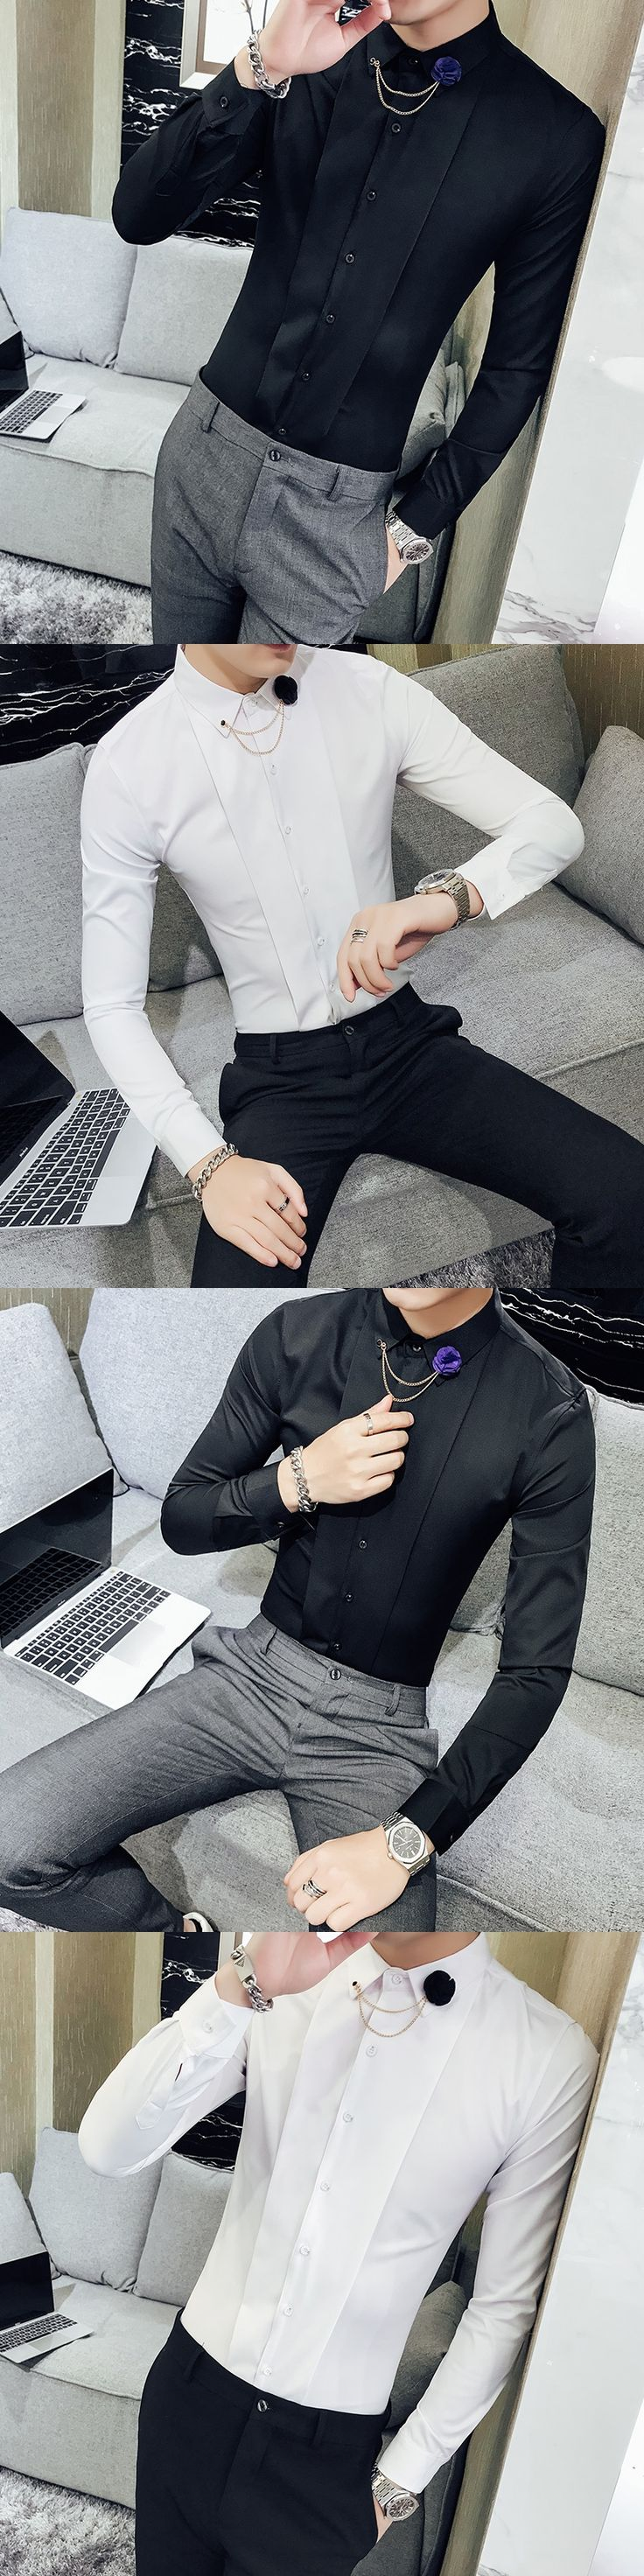 Mens Dress Shirts Black Dinner Dress Mens Clothing 2018 British Style Vetements Wedding Mens Shirts Slim Fit Social Club Vestido